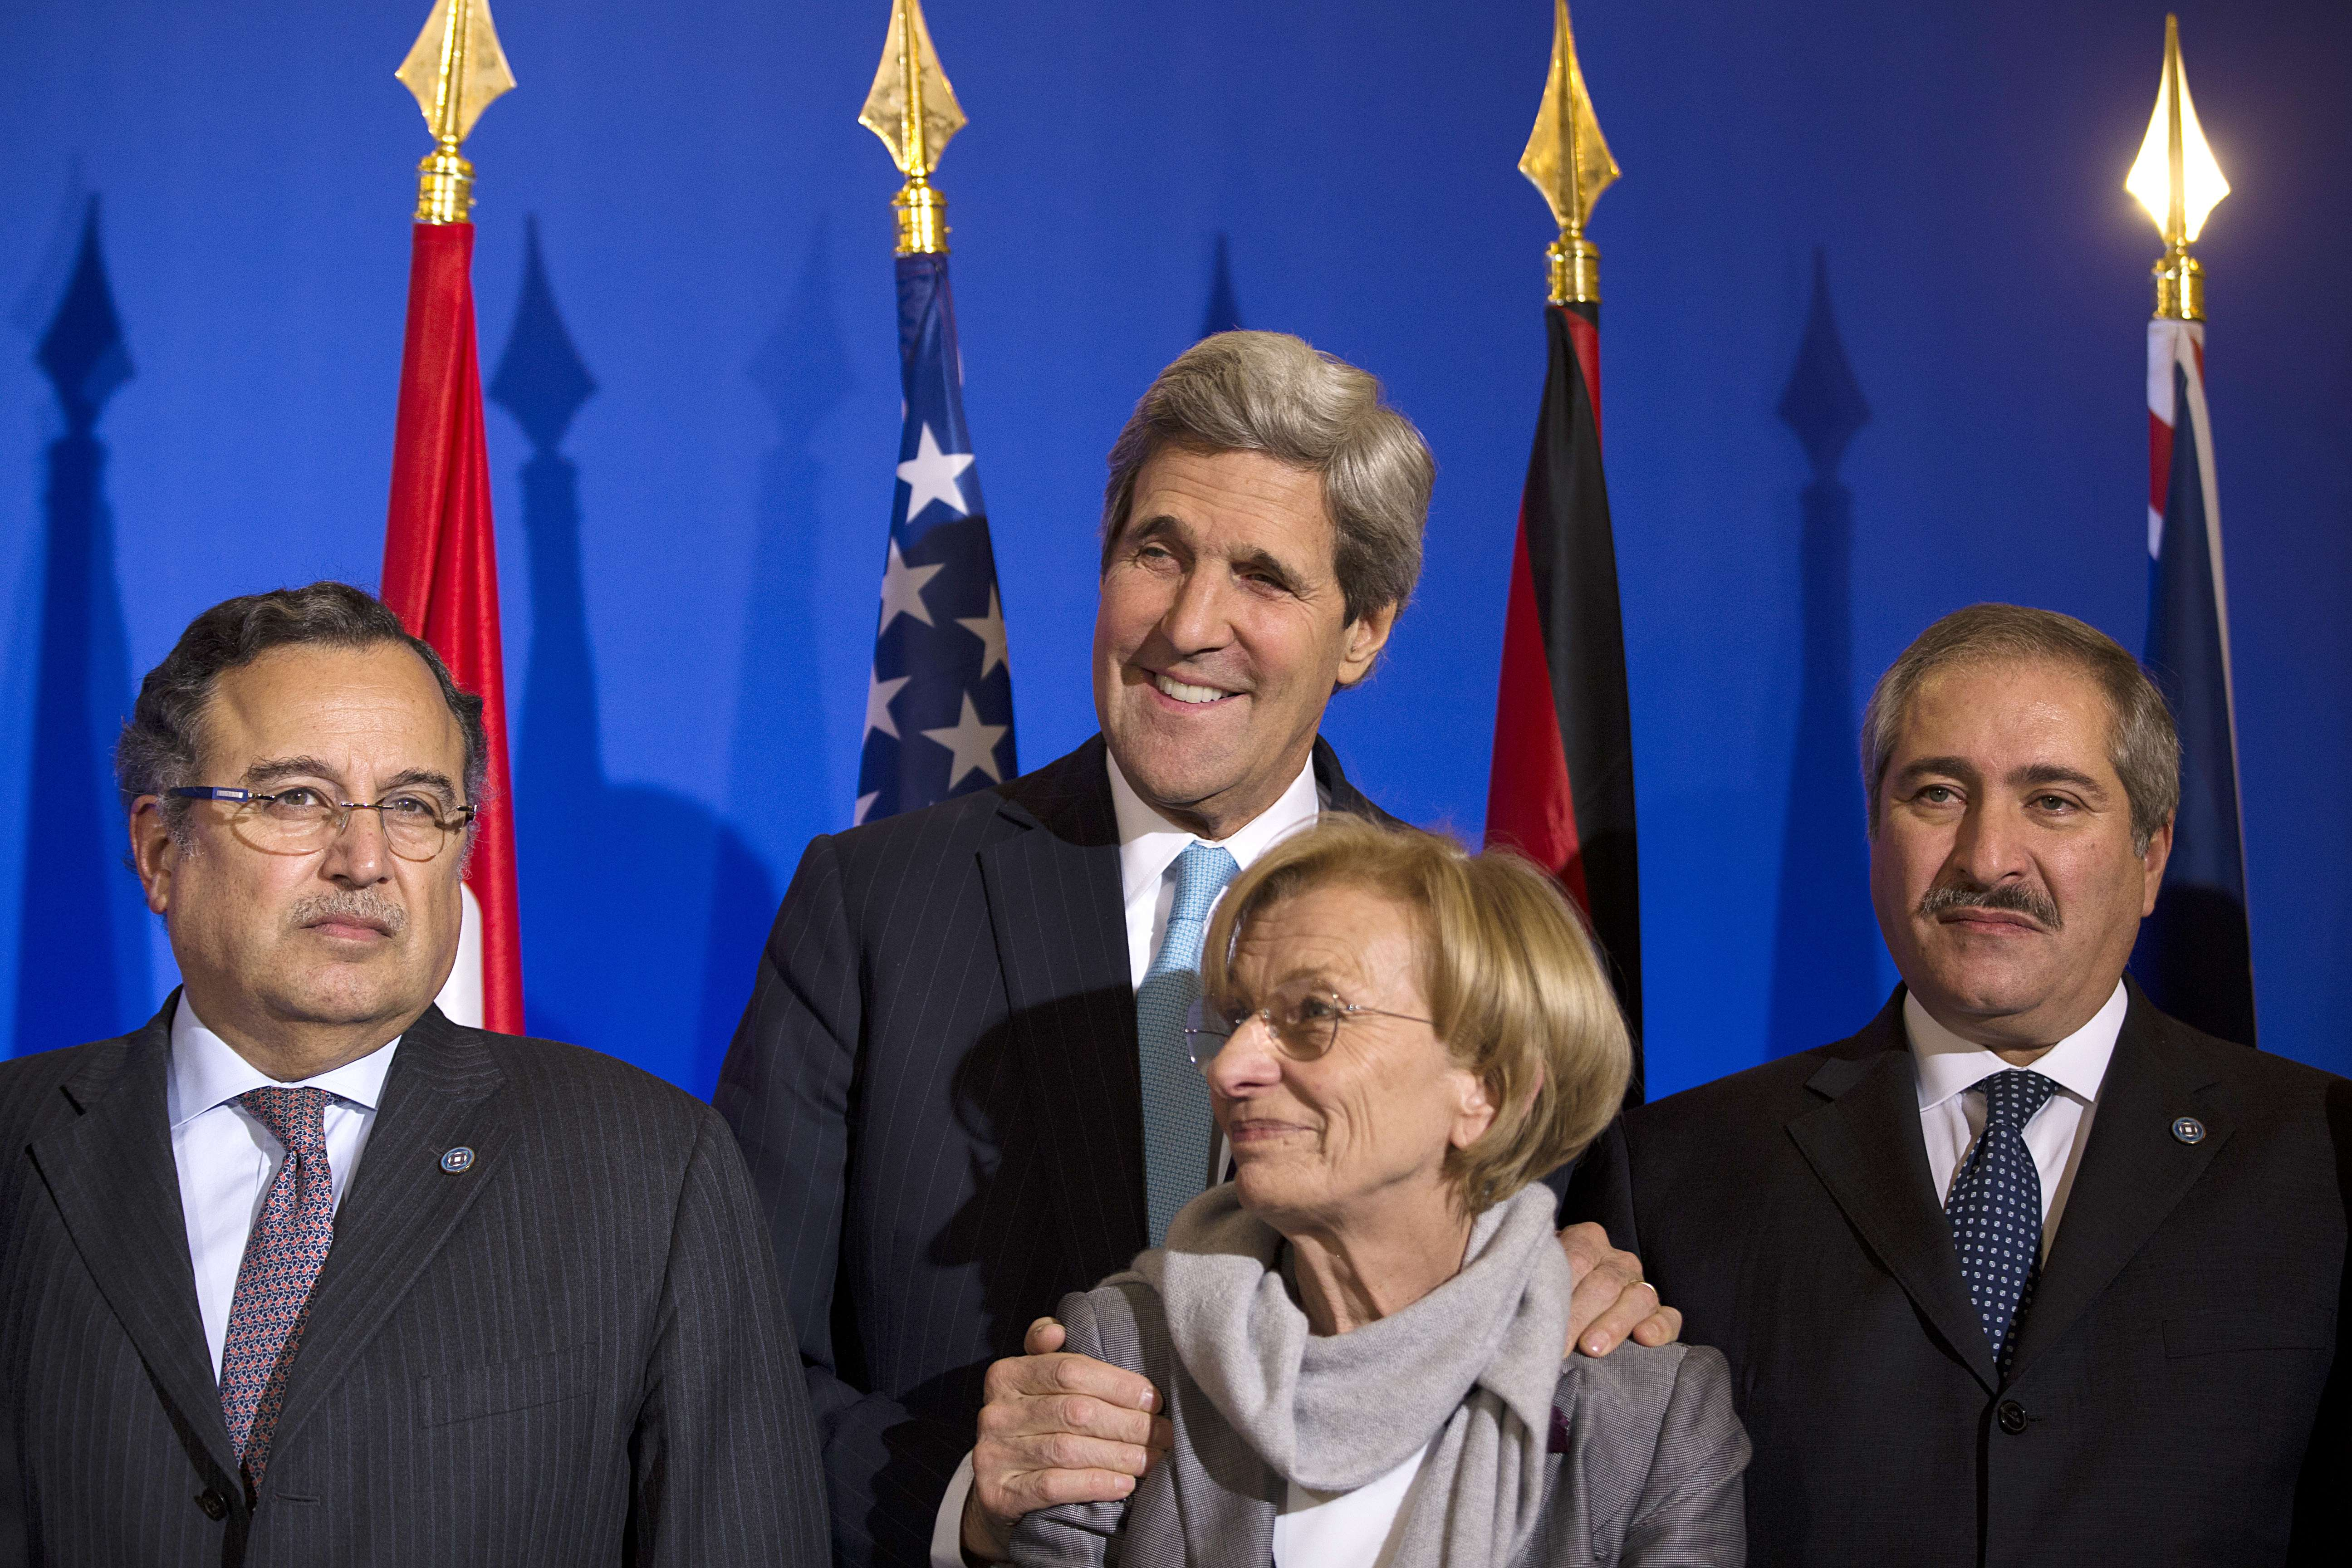 """US Secretary of State John Kerry (C,background) flanked by counterparts Emma Bonino of Italy (C), Nabil Fahmy of Egypt (L) and Marwan Moasher of Jordan (R) prepare to pose for a family picture at the Quai d'Orsay, the French Foreign ministry in Paris on January 12, 2014) after the conference of """"Friends of Syria"""". The group met with leaders of the mainstream opposition to President Bashar al-Assad ahead of peace talks due later this month. The Coalition of eleven countries has yet to decide whether it will take part in UN-backed peace talks aimed at negotiating an end to a conflict that has left more than 130,000 people dead and millions displaced since it erupted in March 2011.  (AFP PHOTO / JOEL SAGET)"""